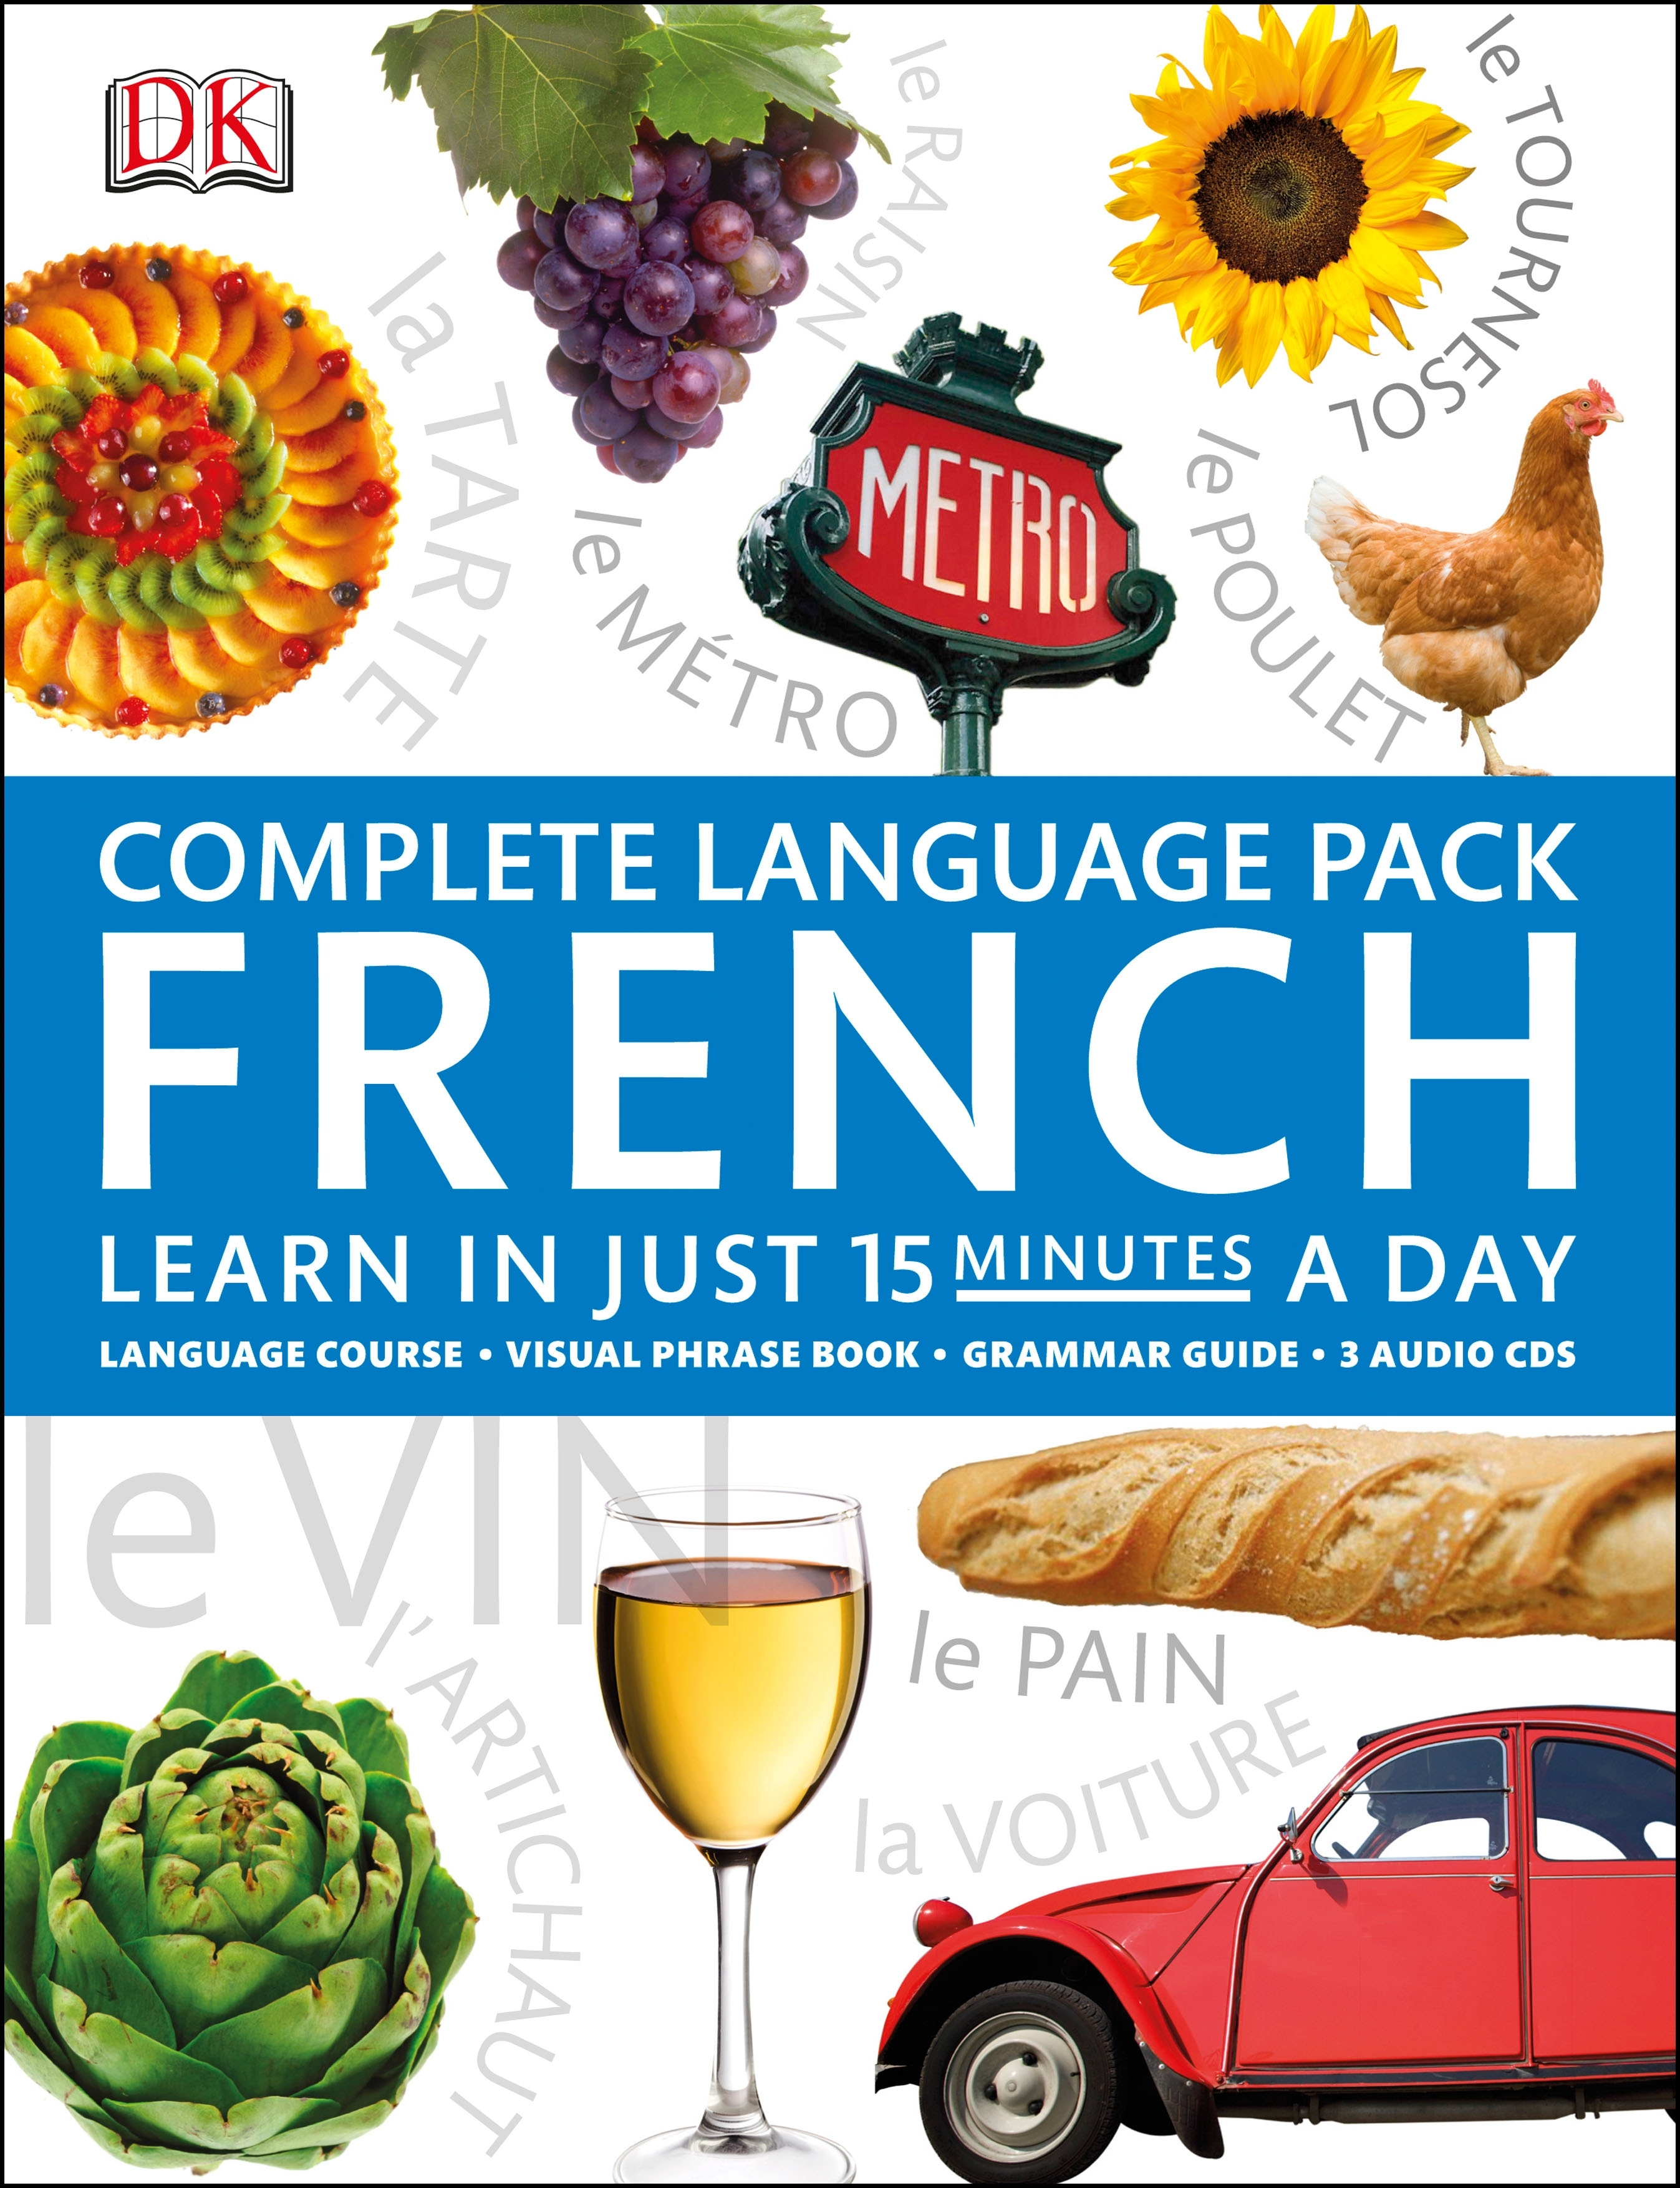 Complete Language Pack French by Dk, ISBN: 9781409385202